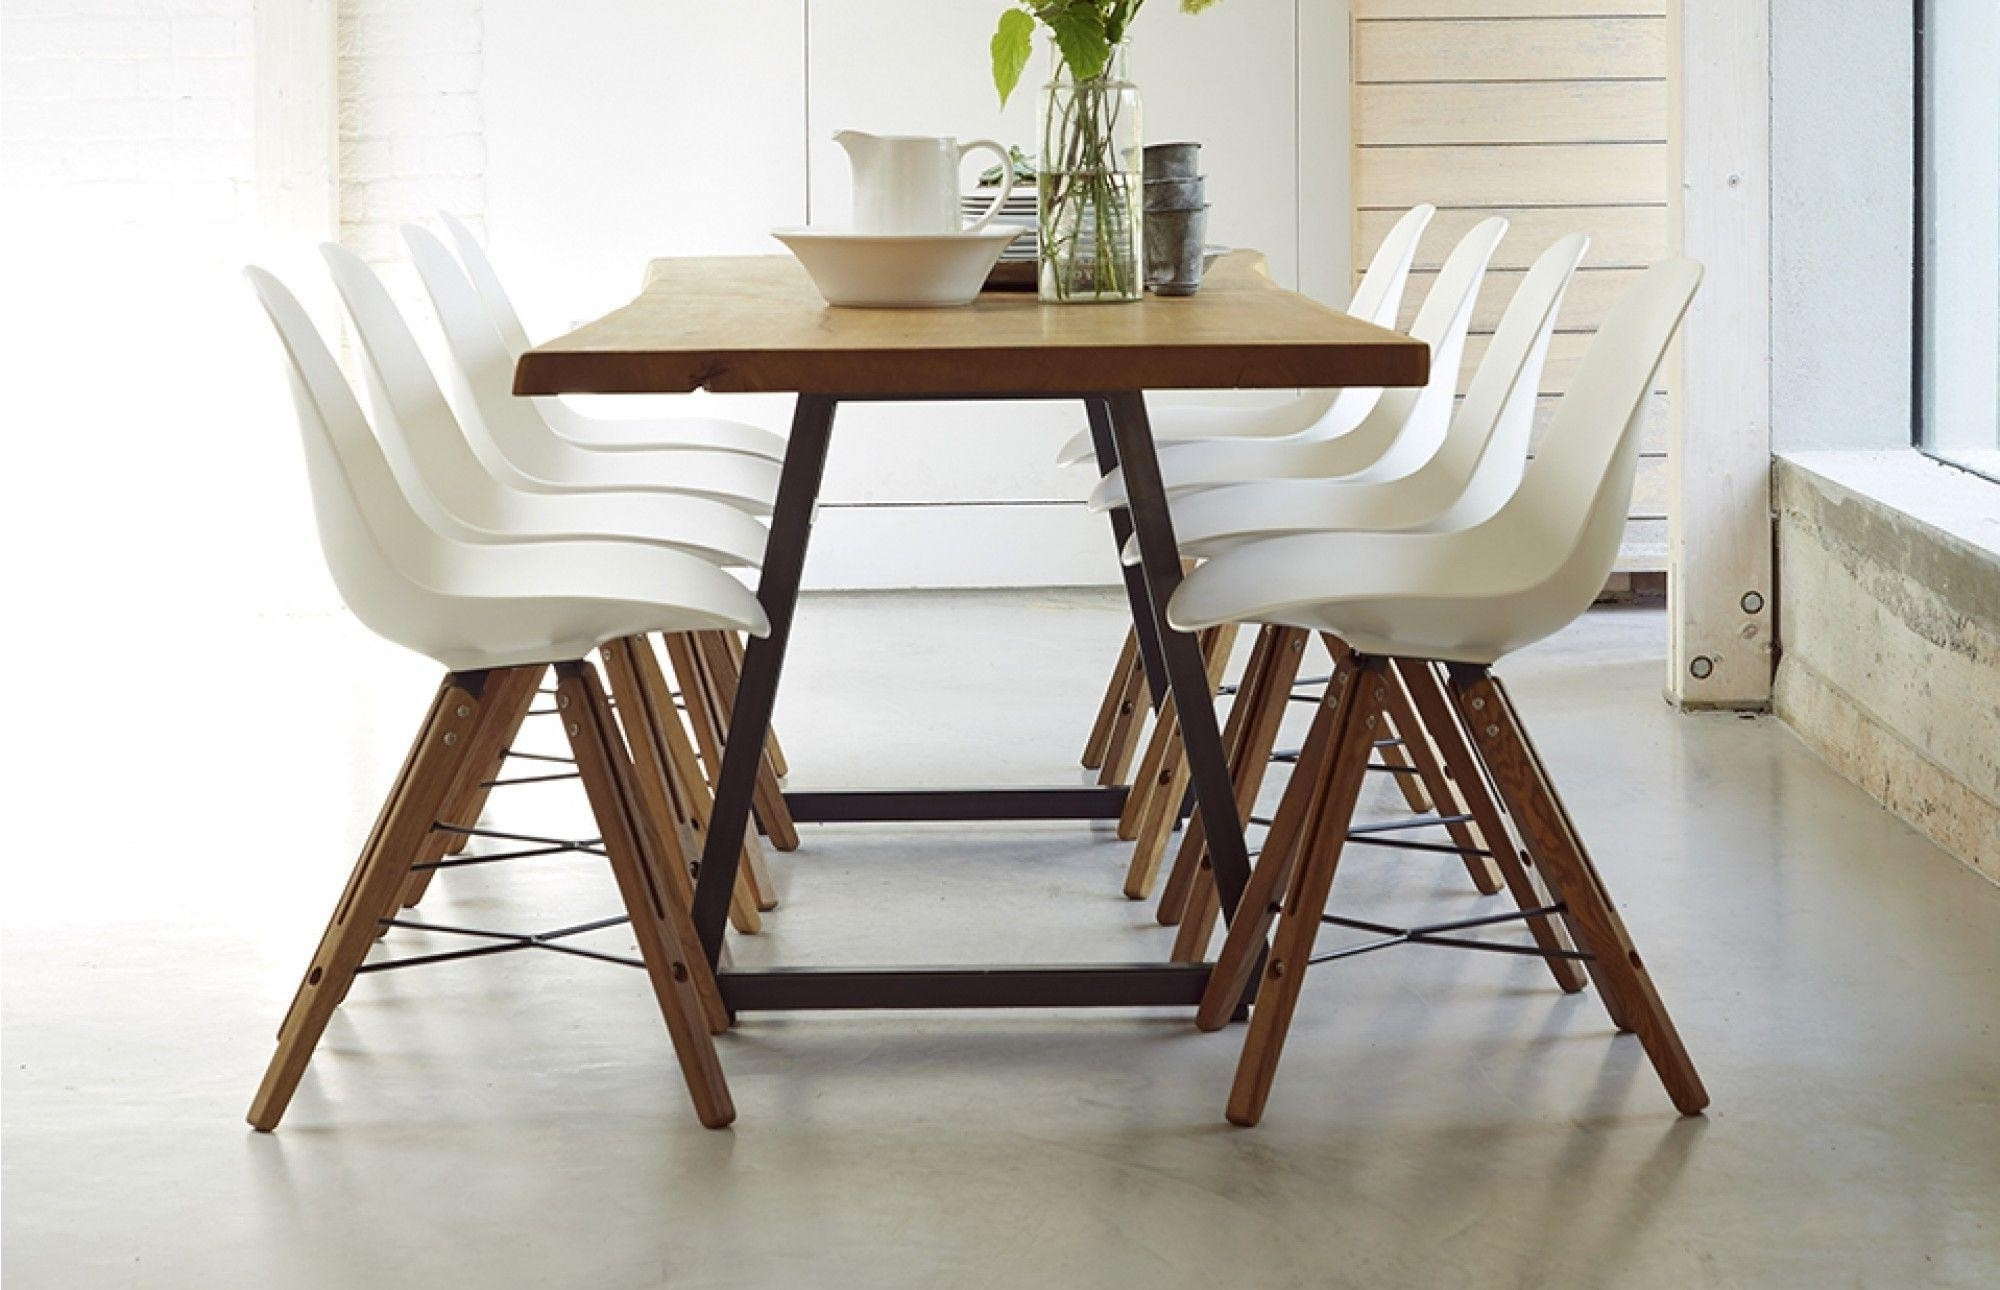 Preferred 8 Seater Oak Dining Tables Pertaining To 6 Seater Dining Table Size Inspirational Best 8 Seater Dining Room (View 21 of 25)